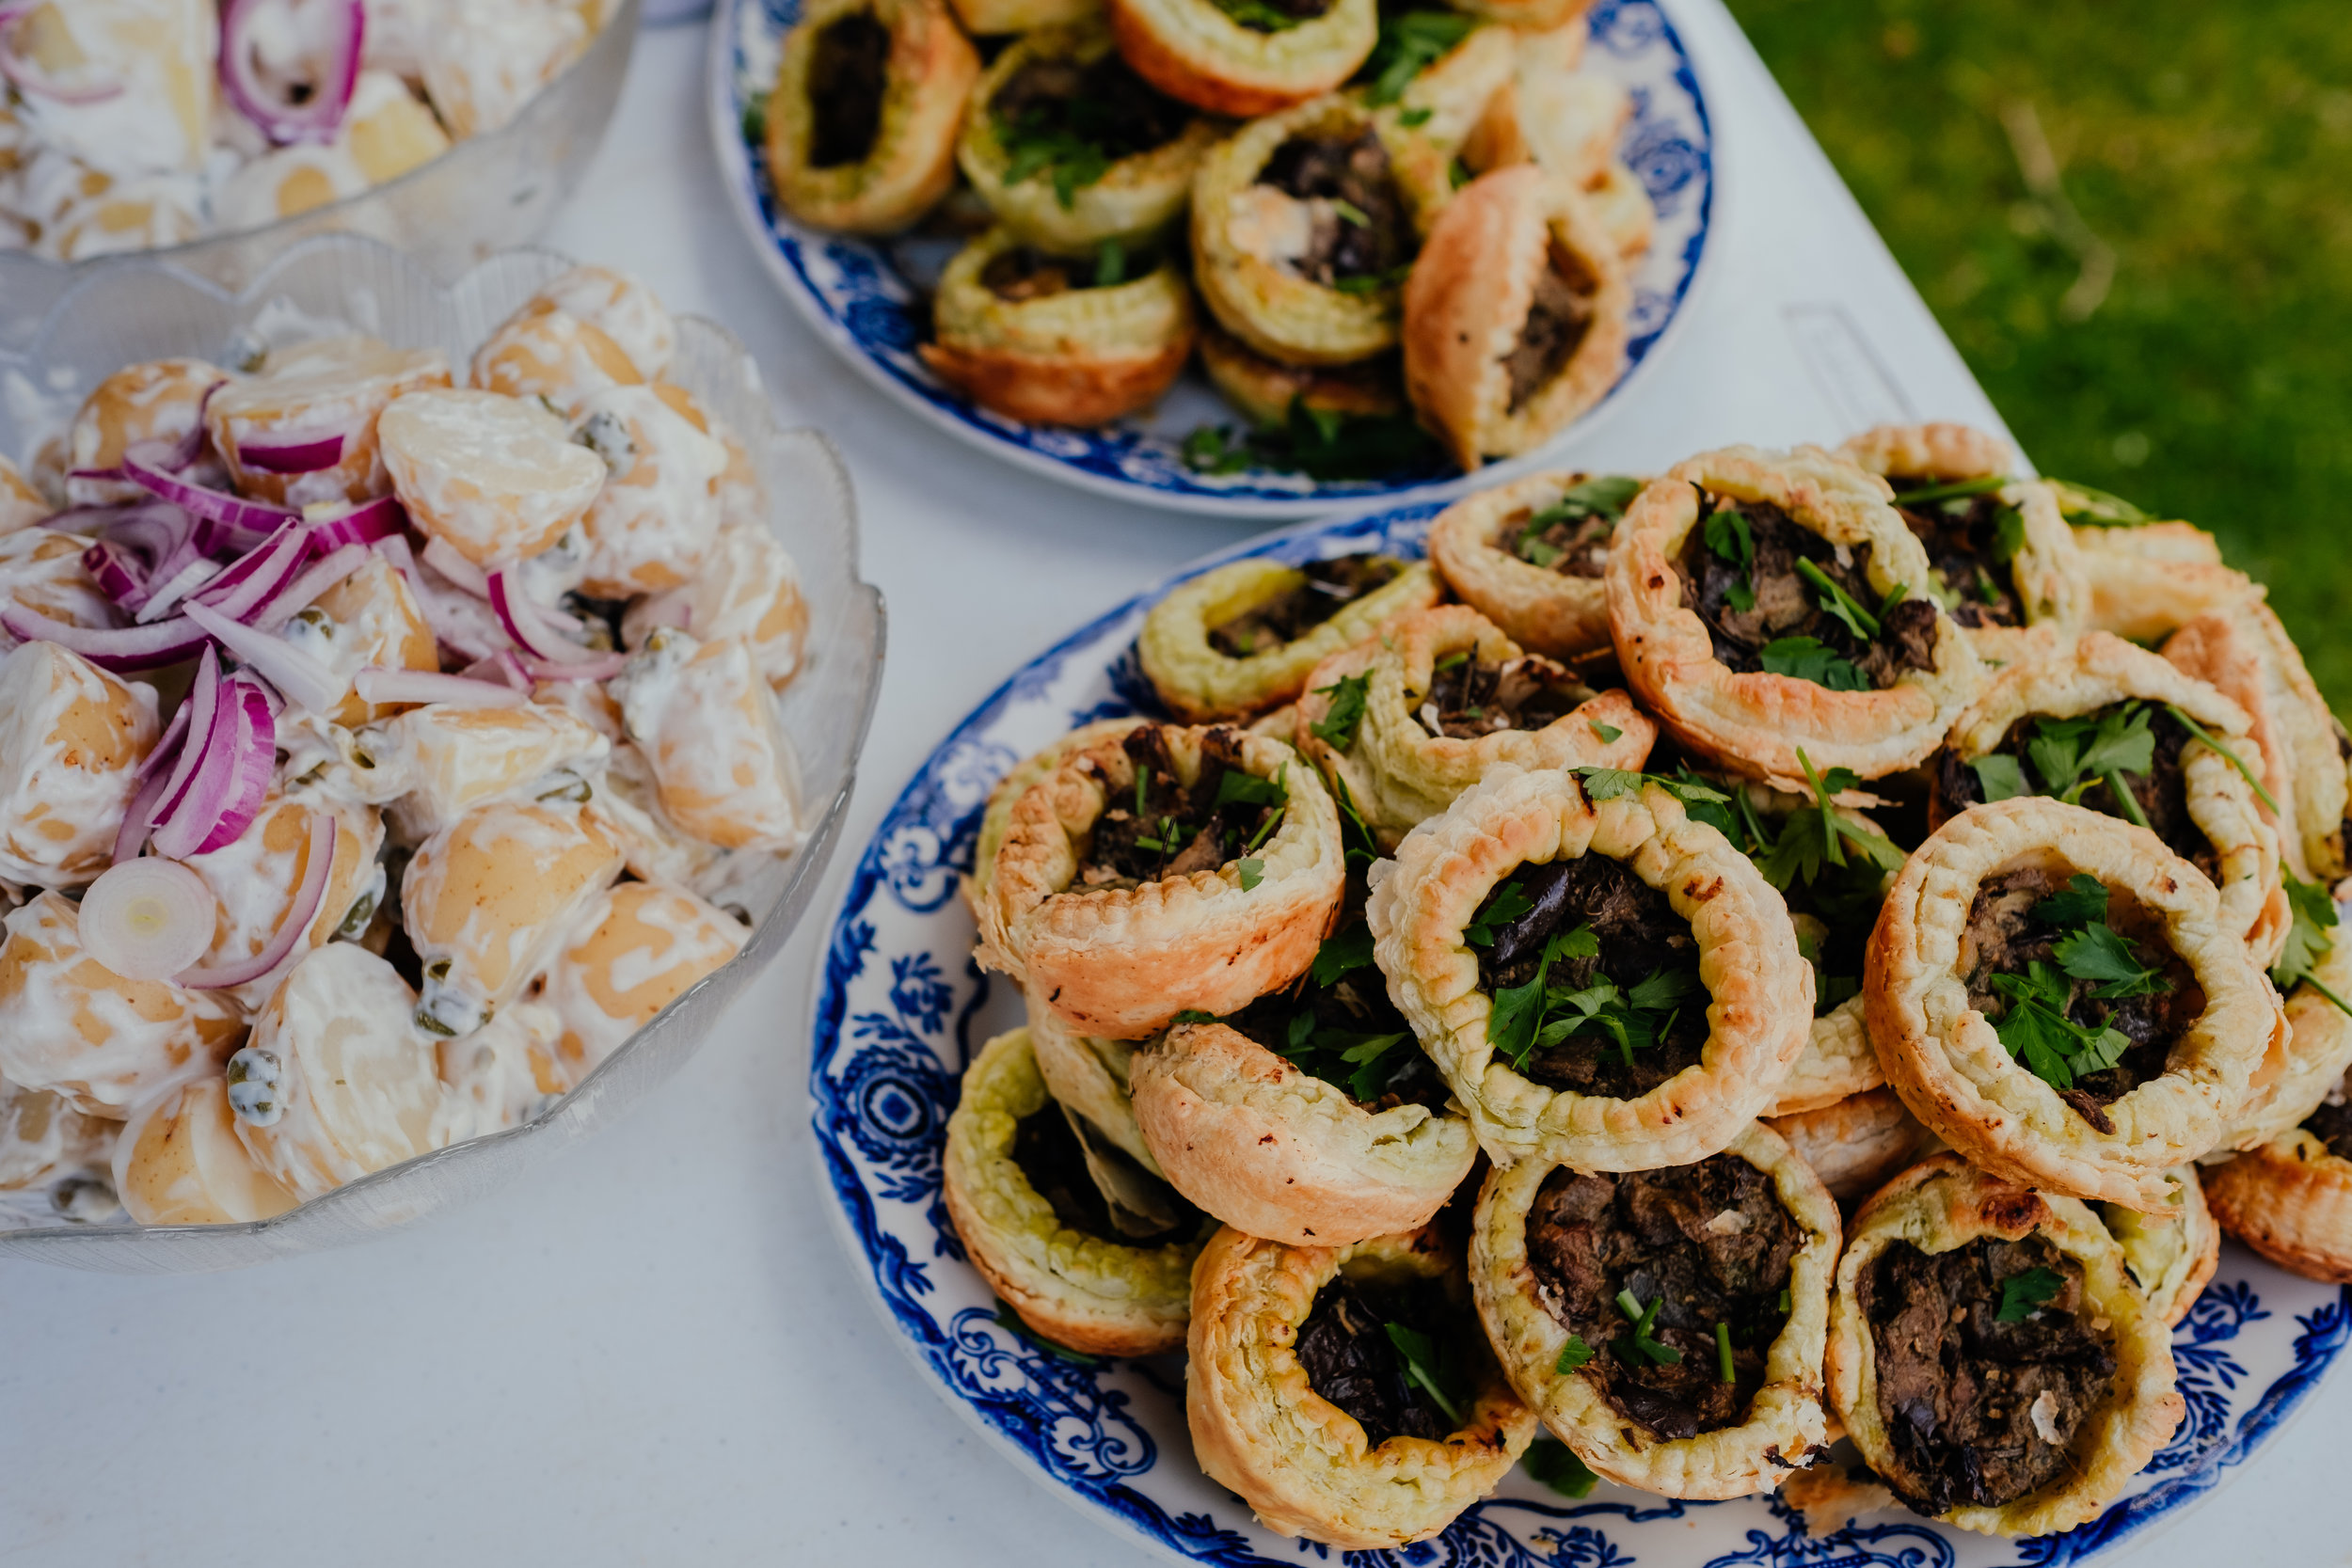 Vegan wedding food in Brighton